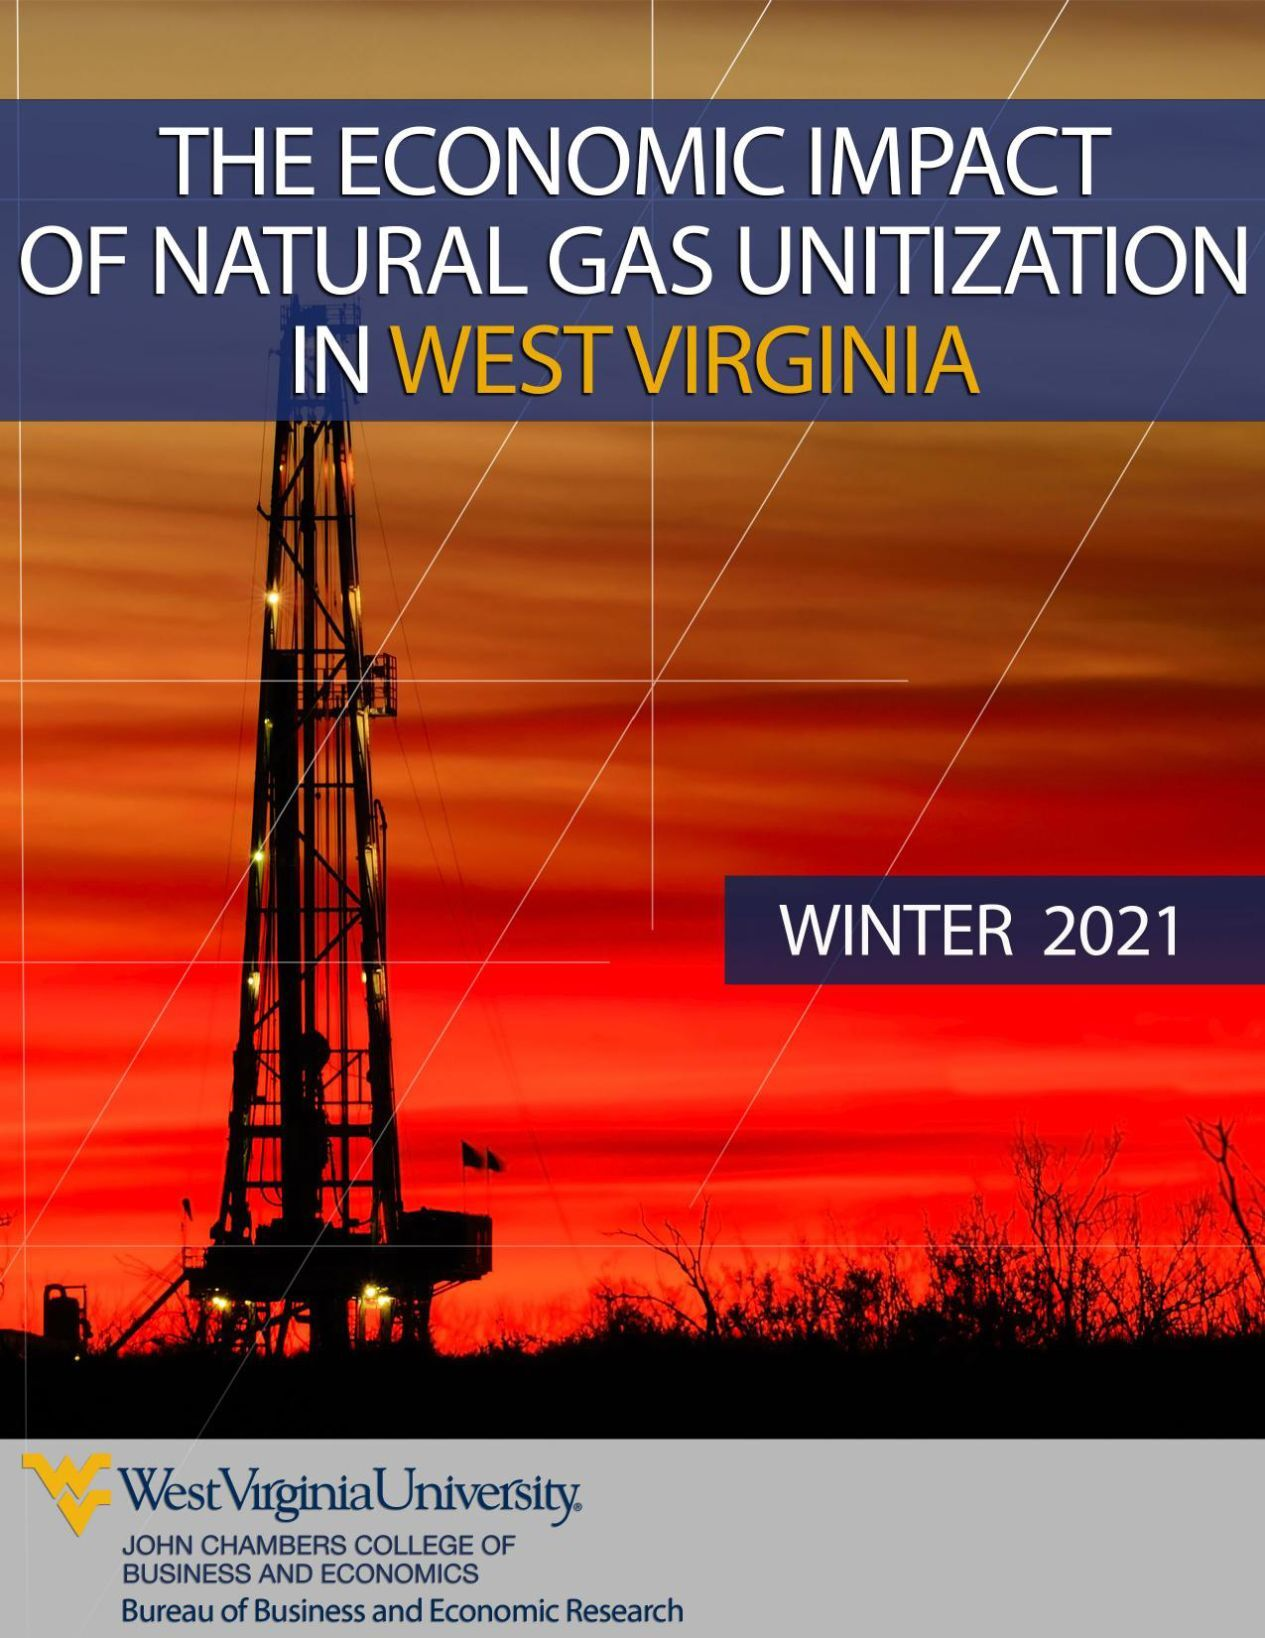 The Economic Impact of Natural Gas Unitization in West Virginia